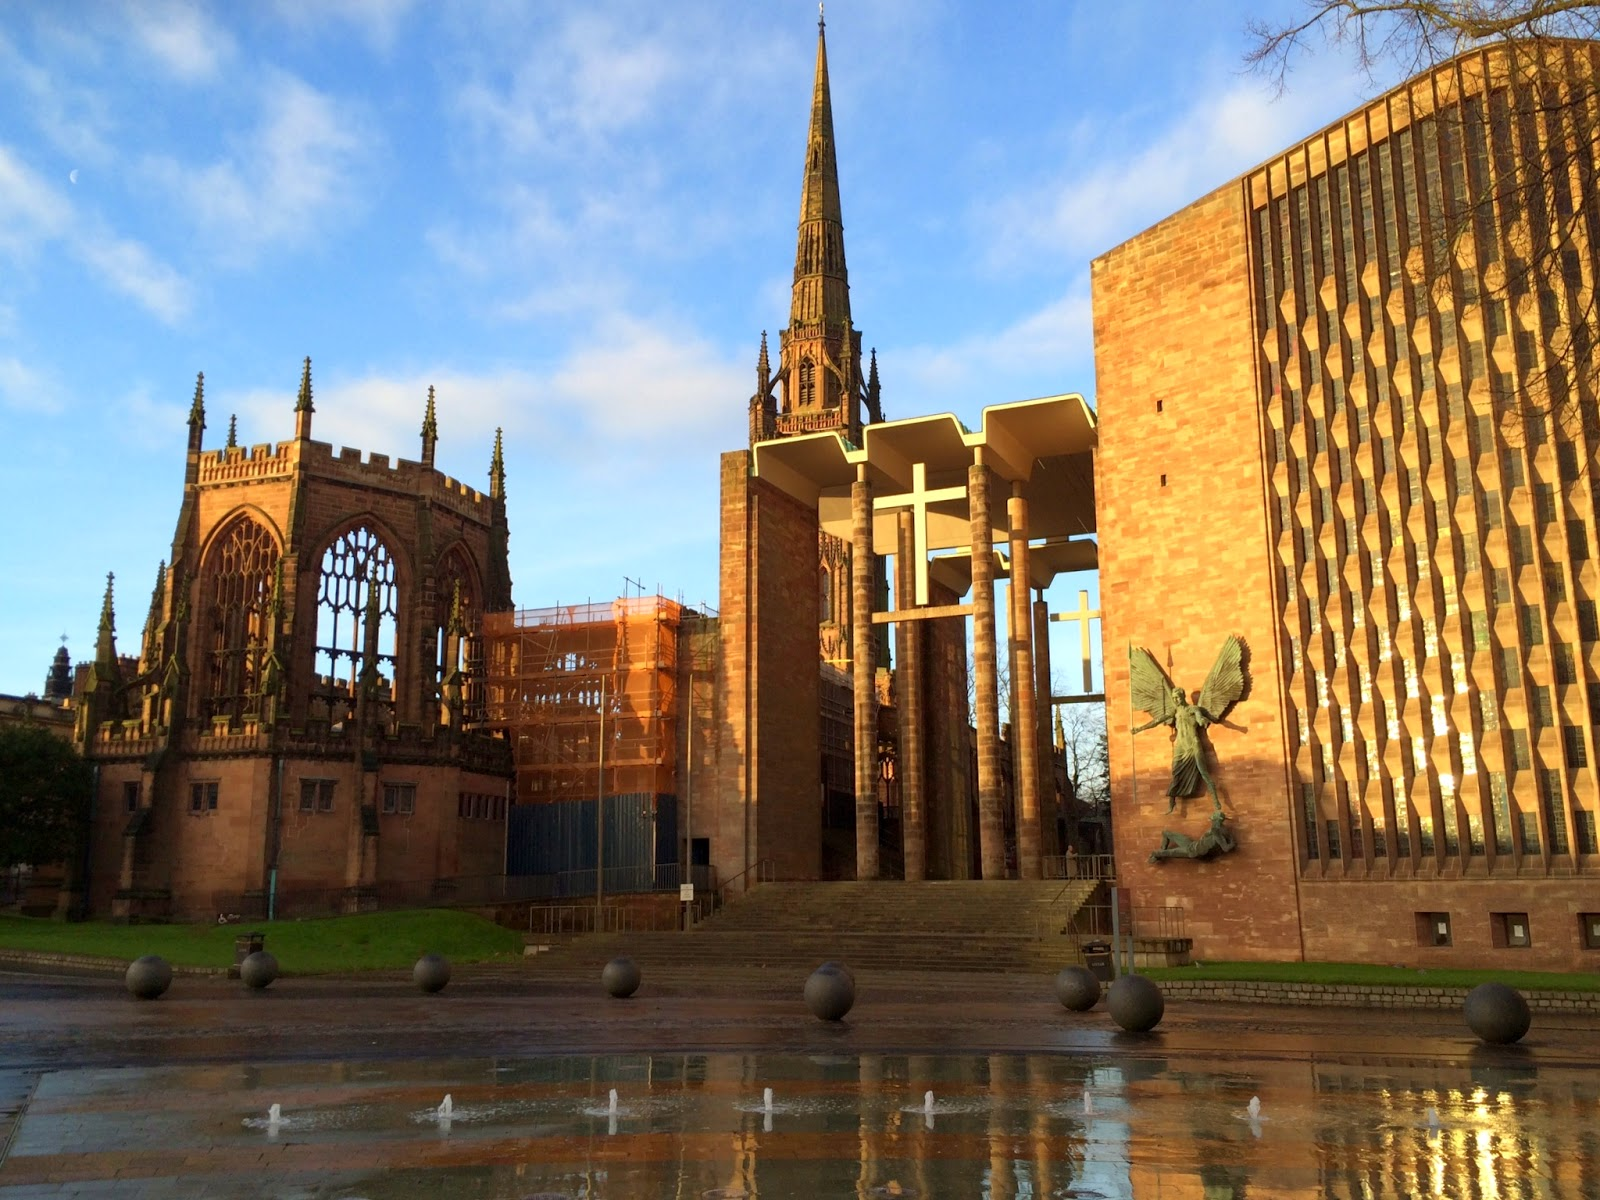 Today Around Coventry December 2014